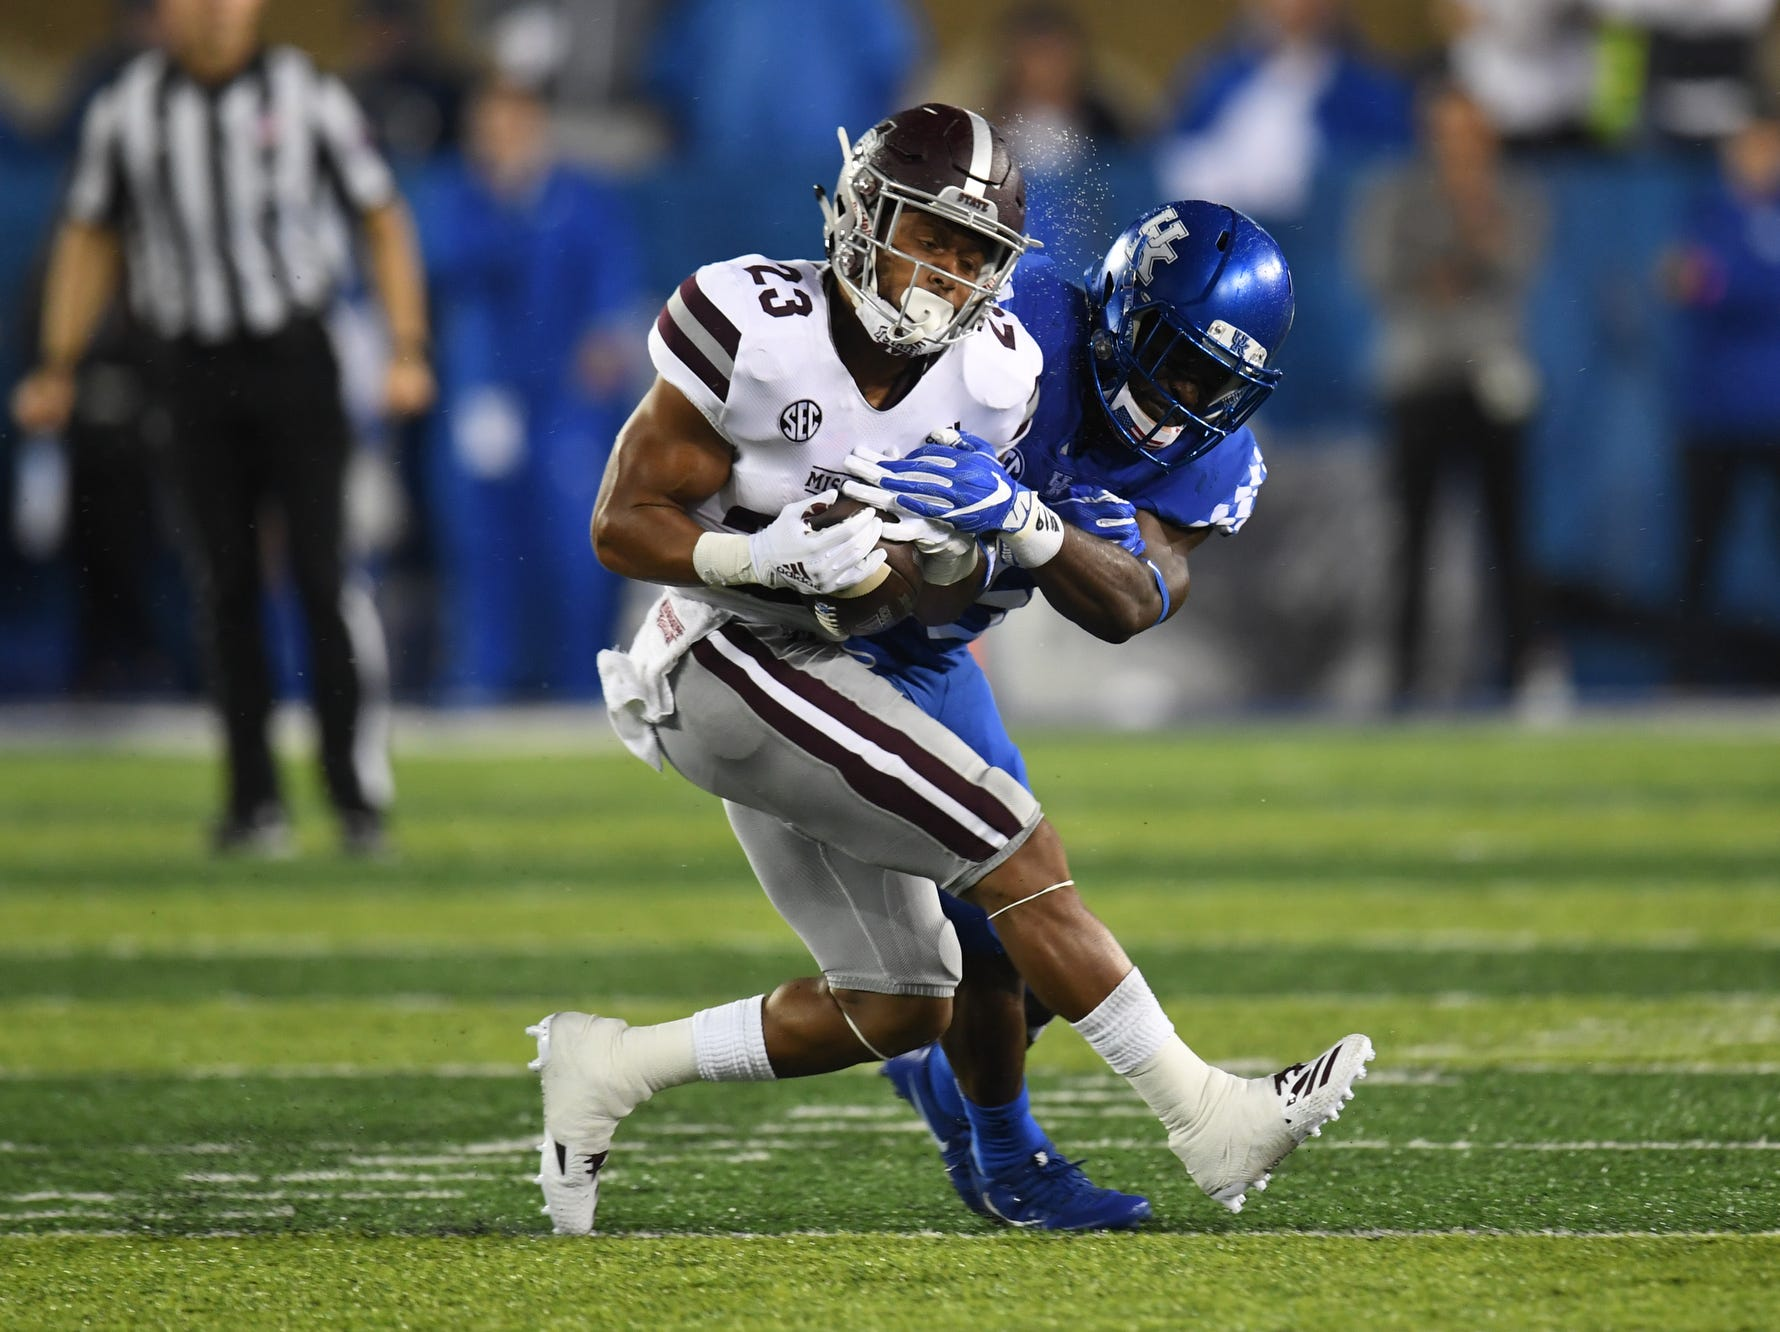 UK FS Darius West knocks the ball for an incomplete pass during the University of Kentucky football game against Mississippi State at Kroger Field in Lexington, Kentucky on Saturday, September 22, 2018.